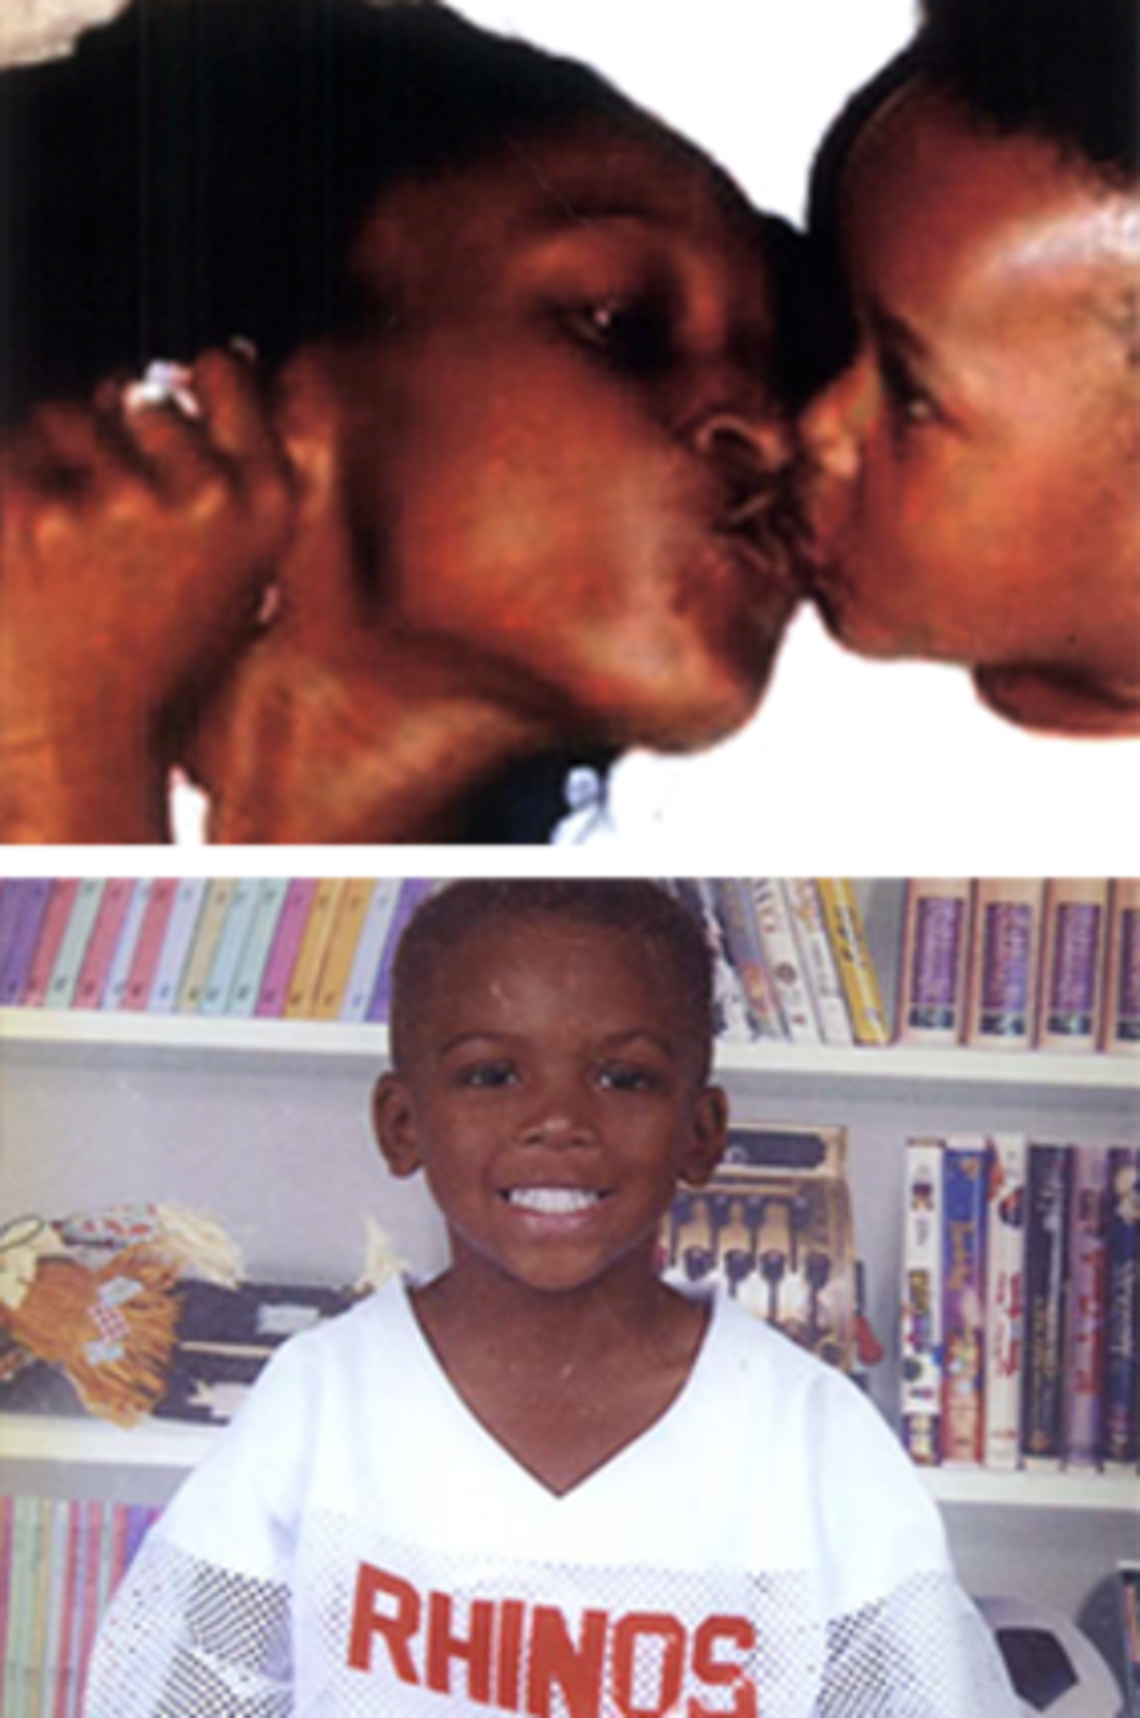 Shell casings found at the scene and entered into NIBIN helped solve the 2009 Louisiana murders of Dominique Sterling and her son, Robert Claiborne, shown at top, and Four Overstreet, shown at bottom.